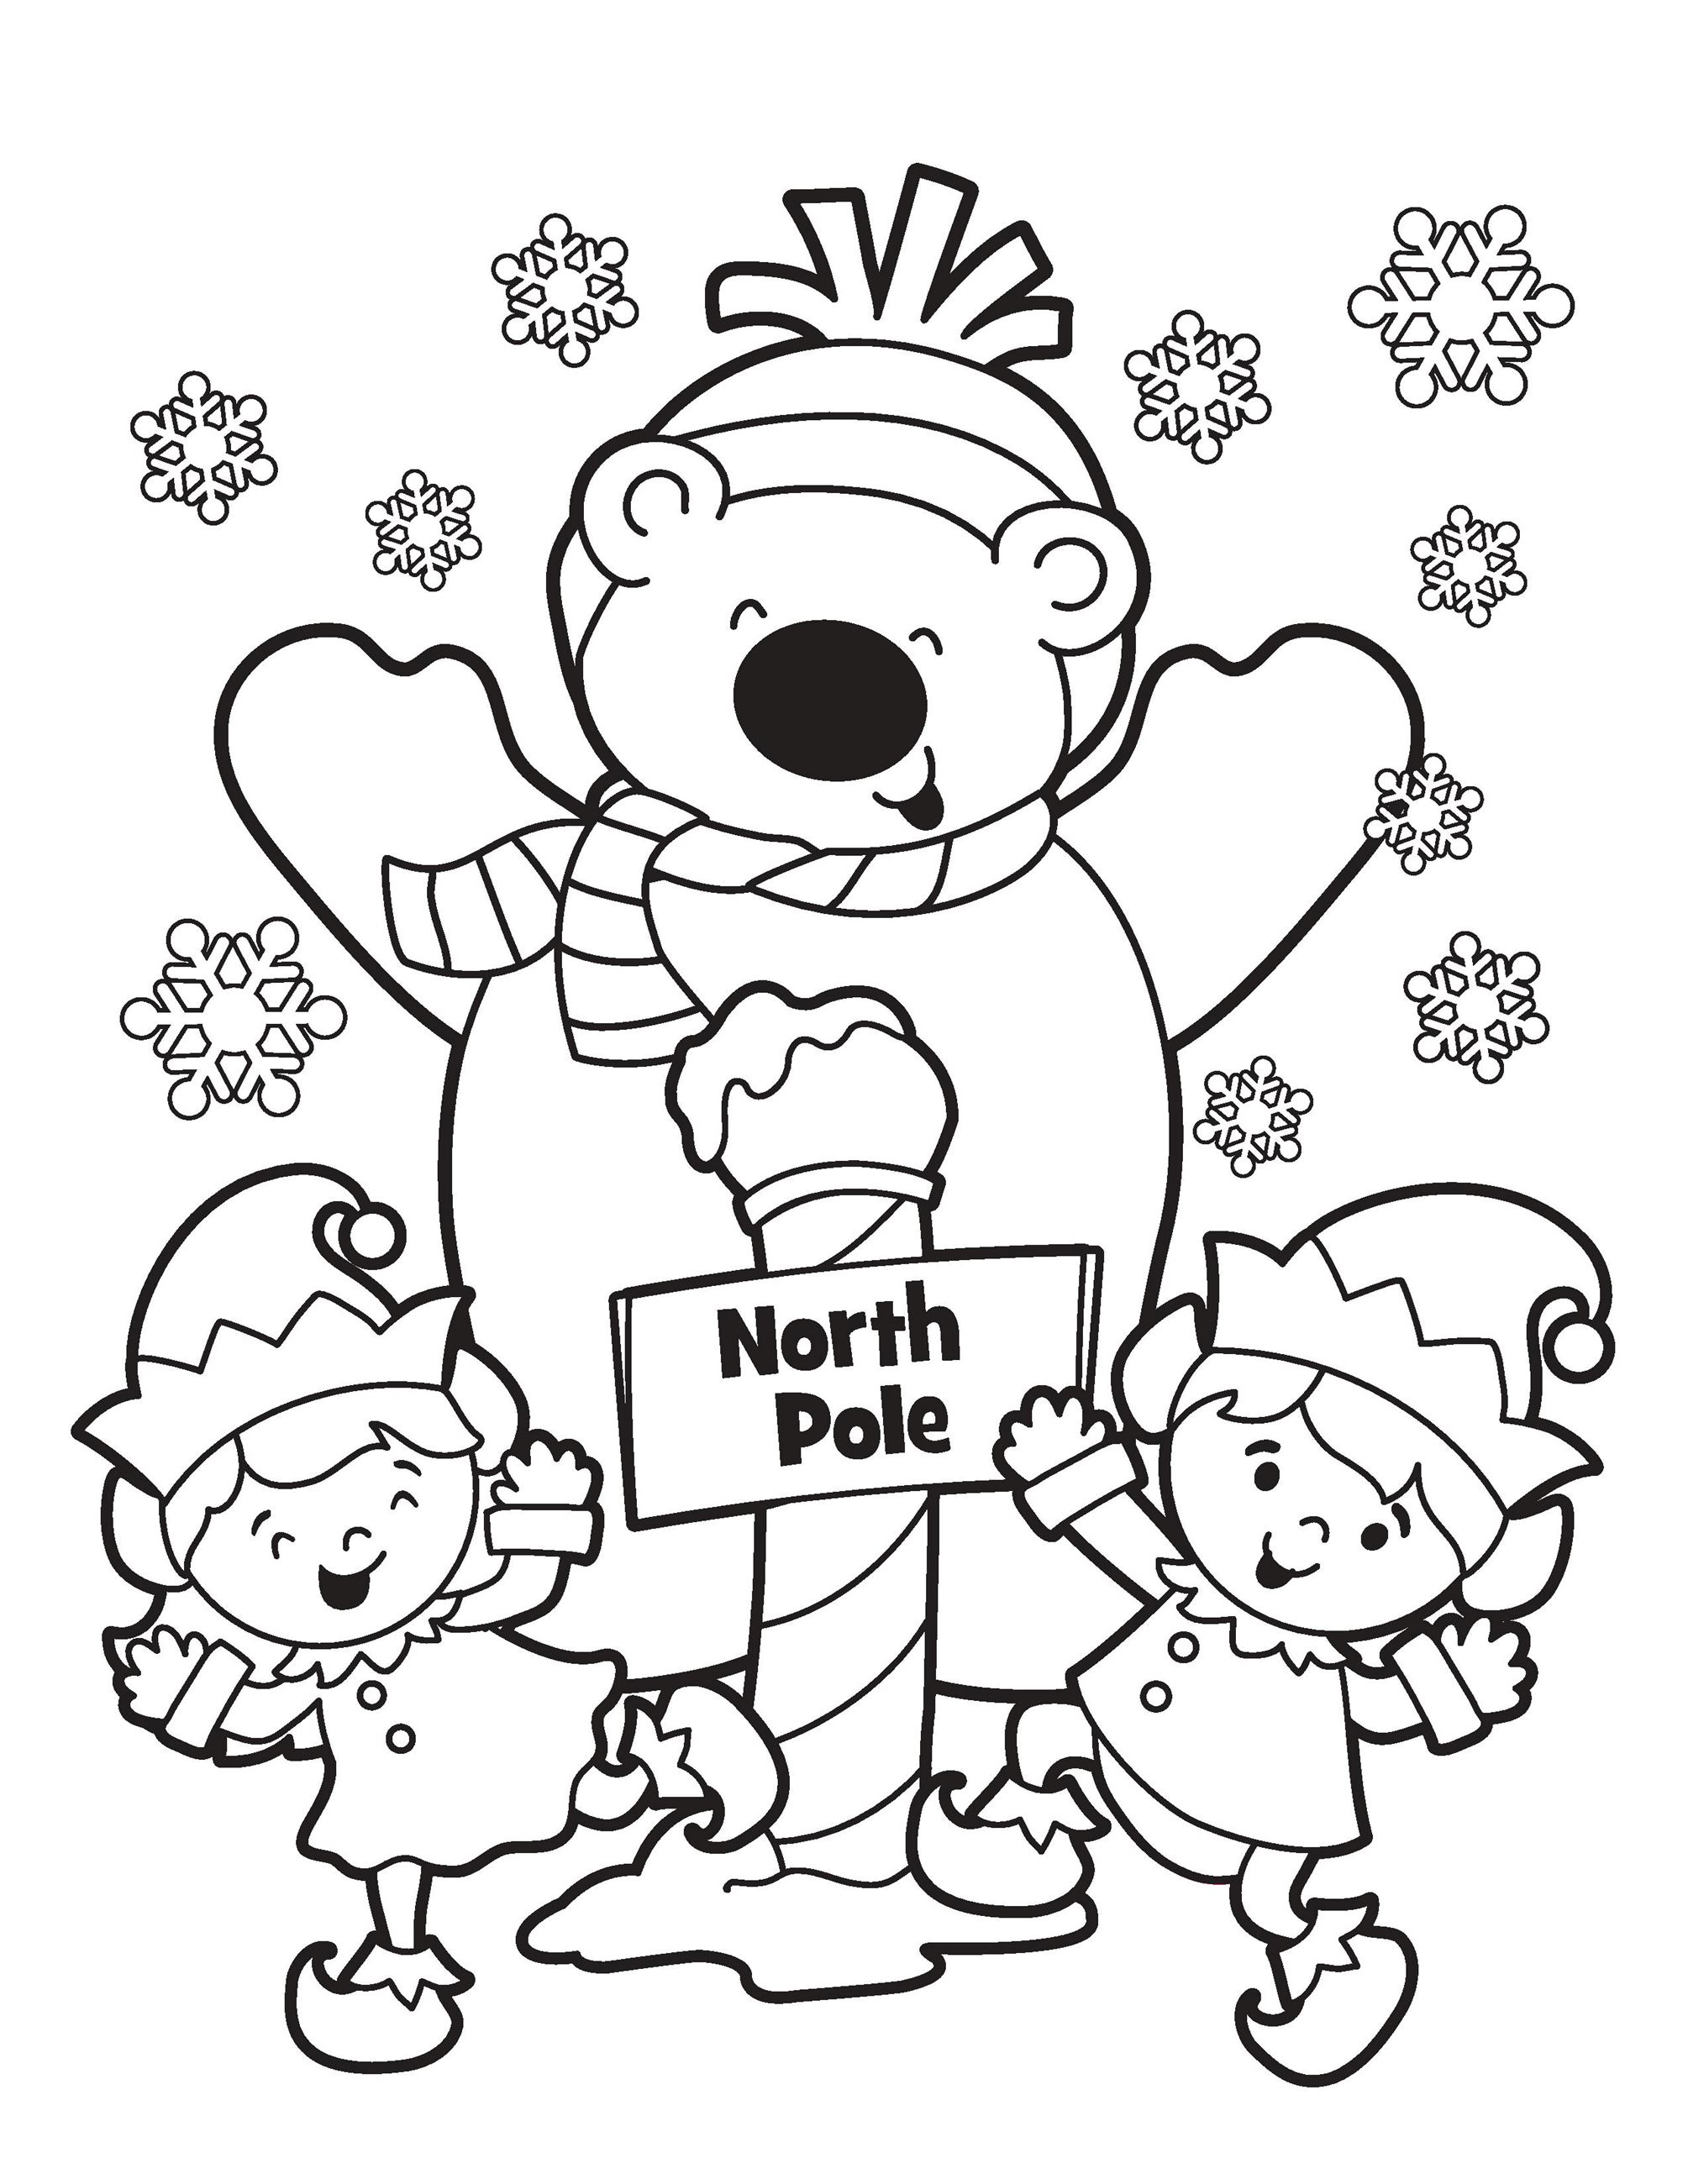 coloring page front opens in new window